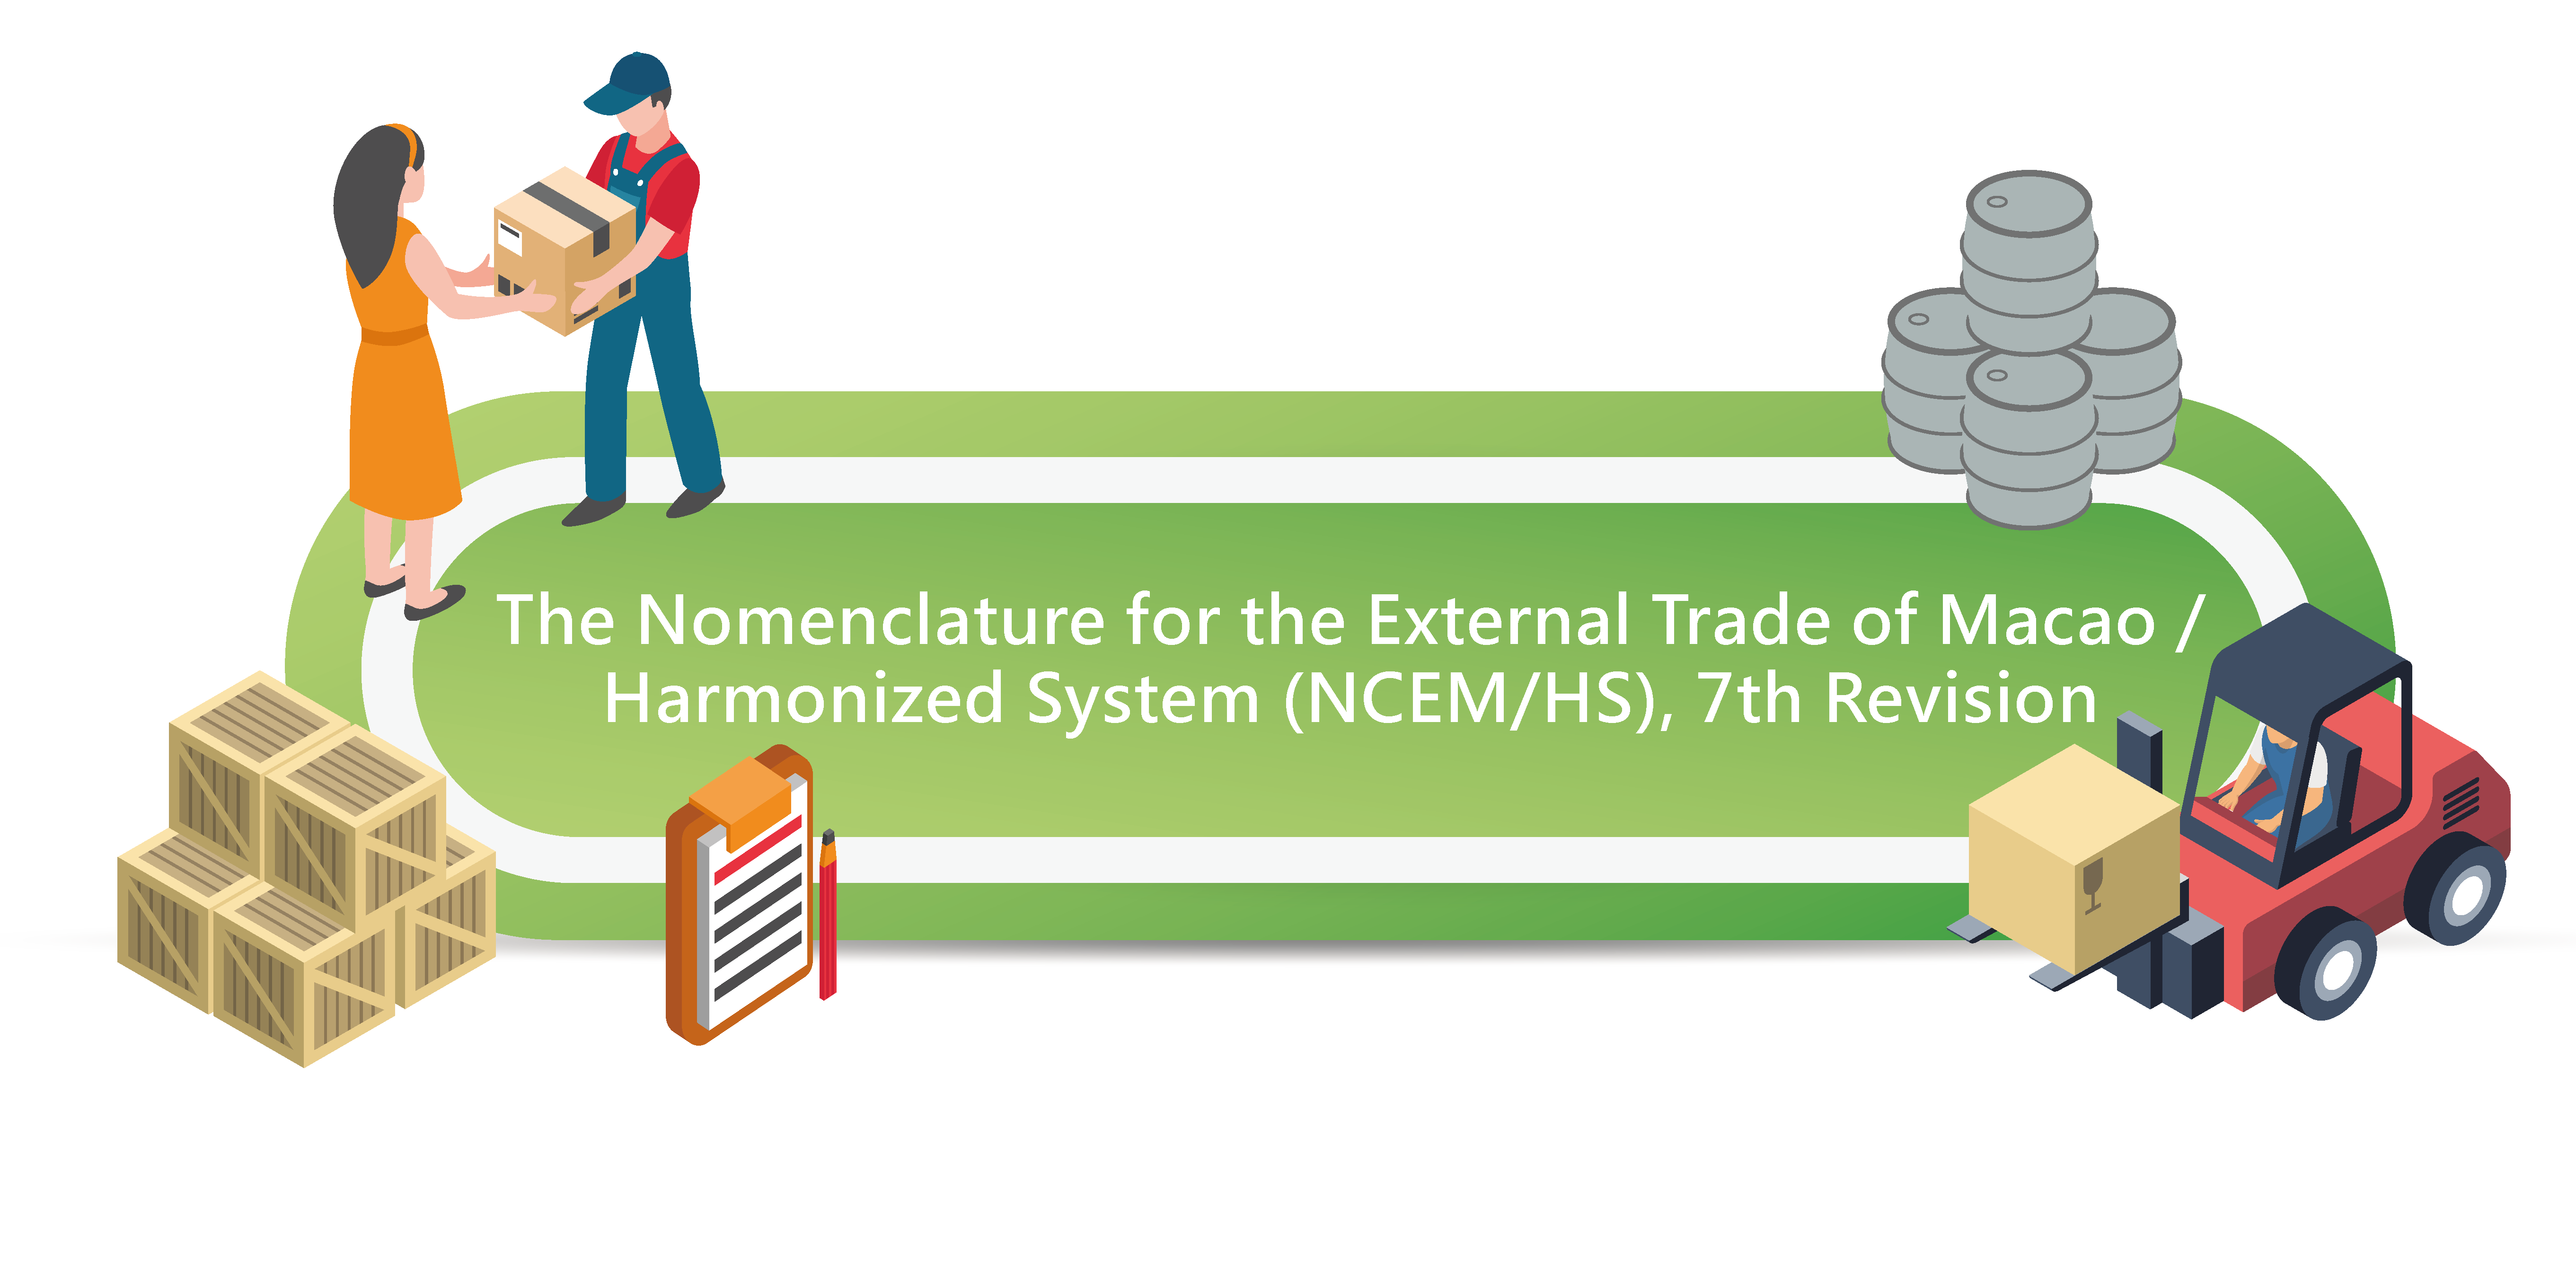 THE NOMENCLATURE FOR THE EXTERNAL TRADE OF MACAO/HARMONIZED SYSTEM